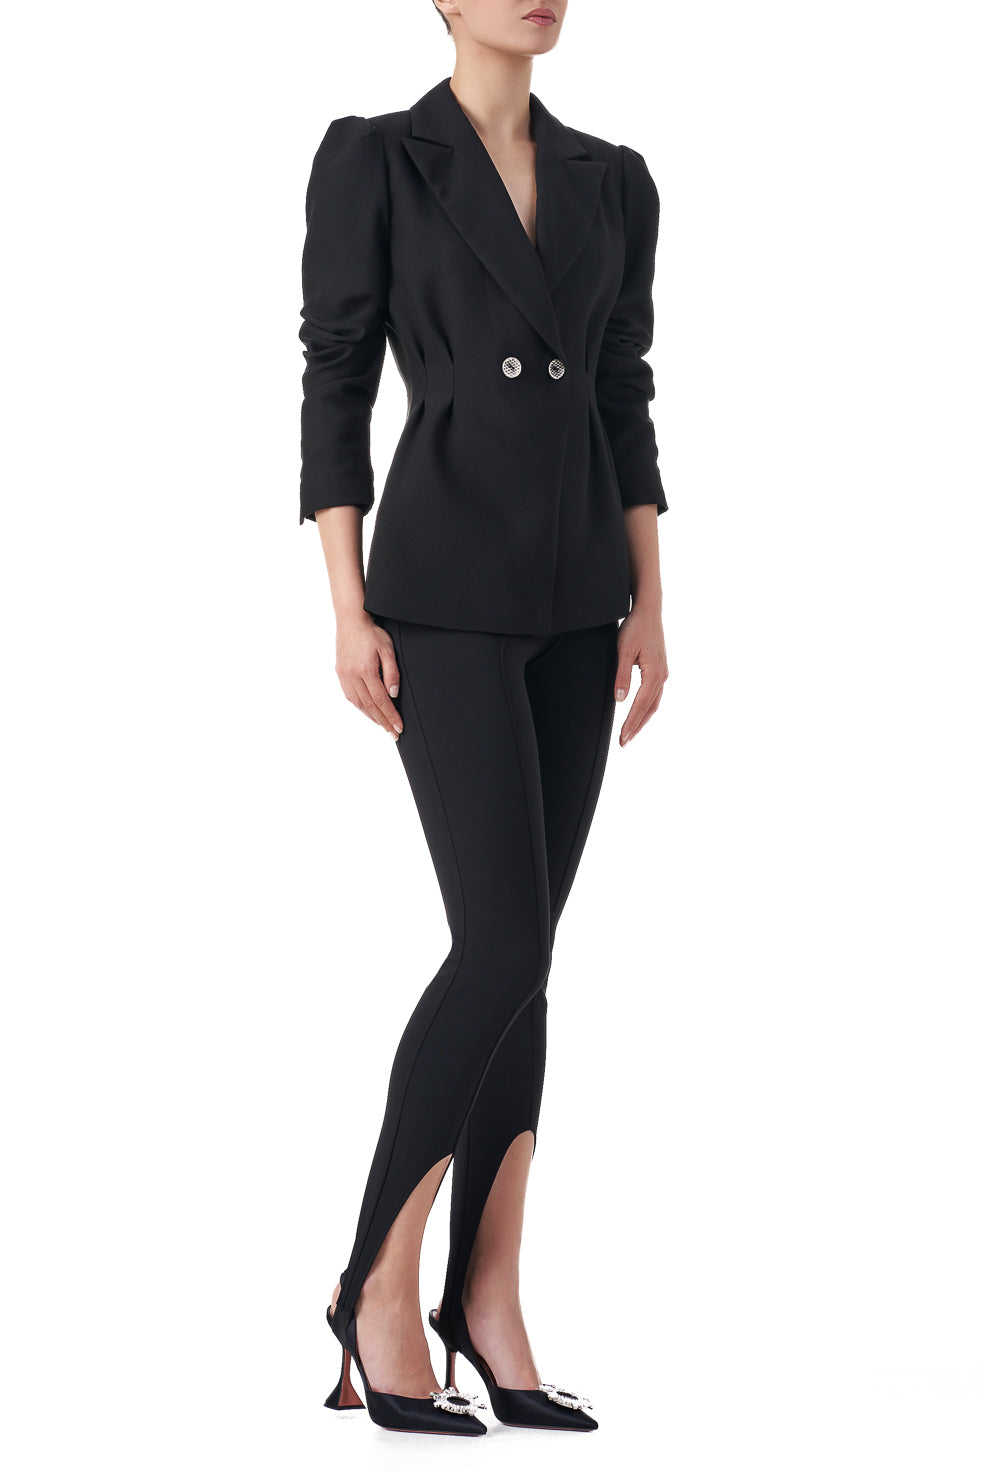 Allison Black fitted puff sleeve double breasted blazer